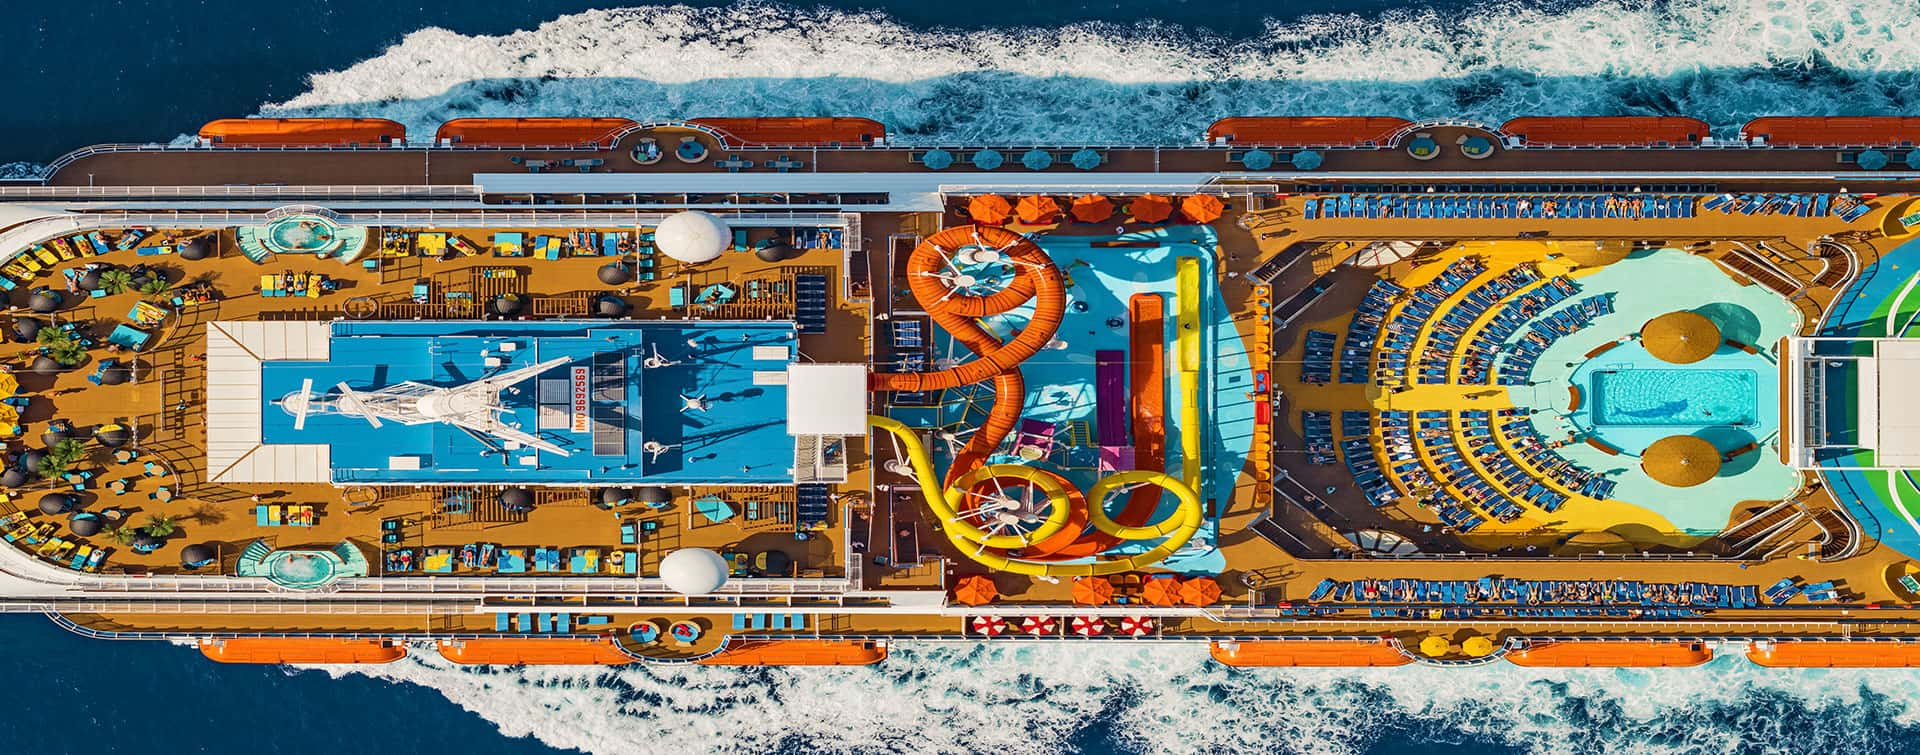 Cruise ship overhead view